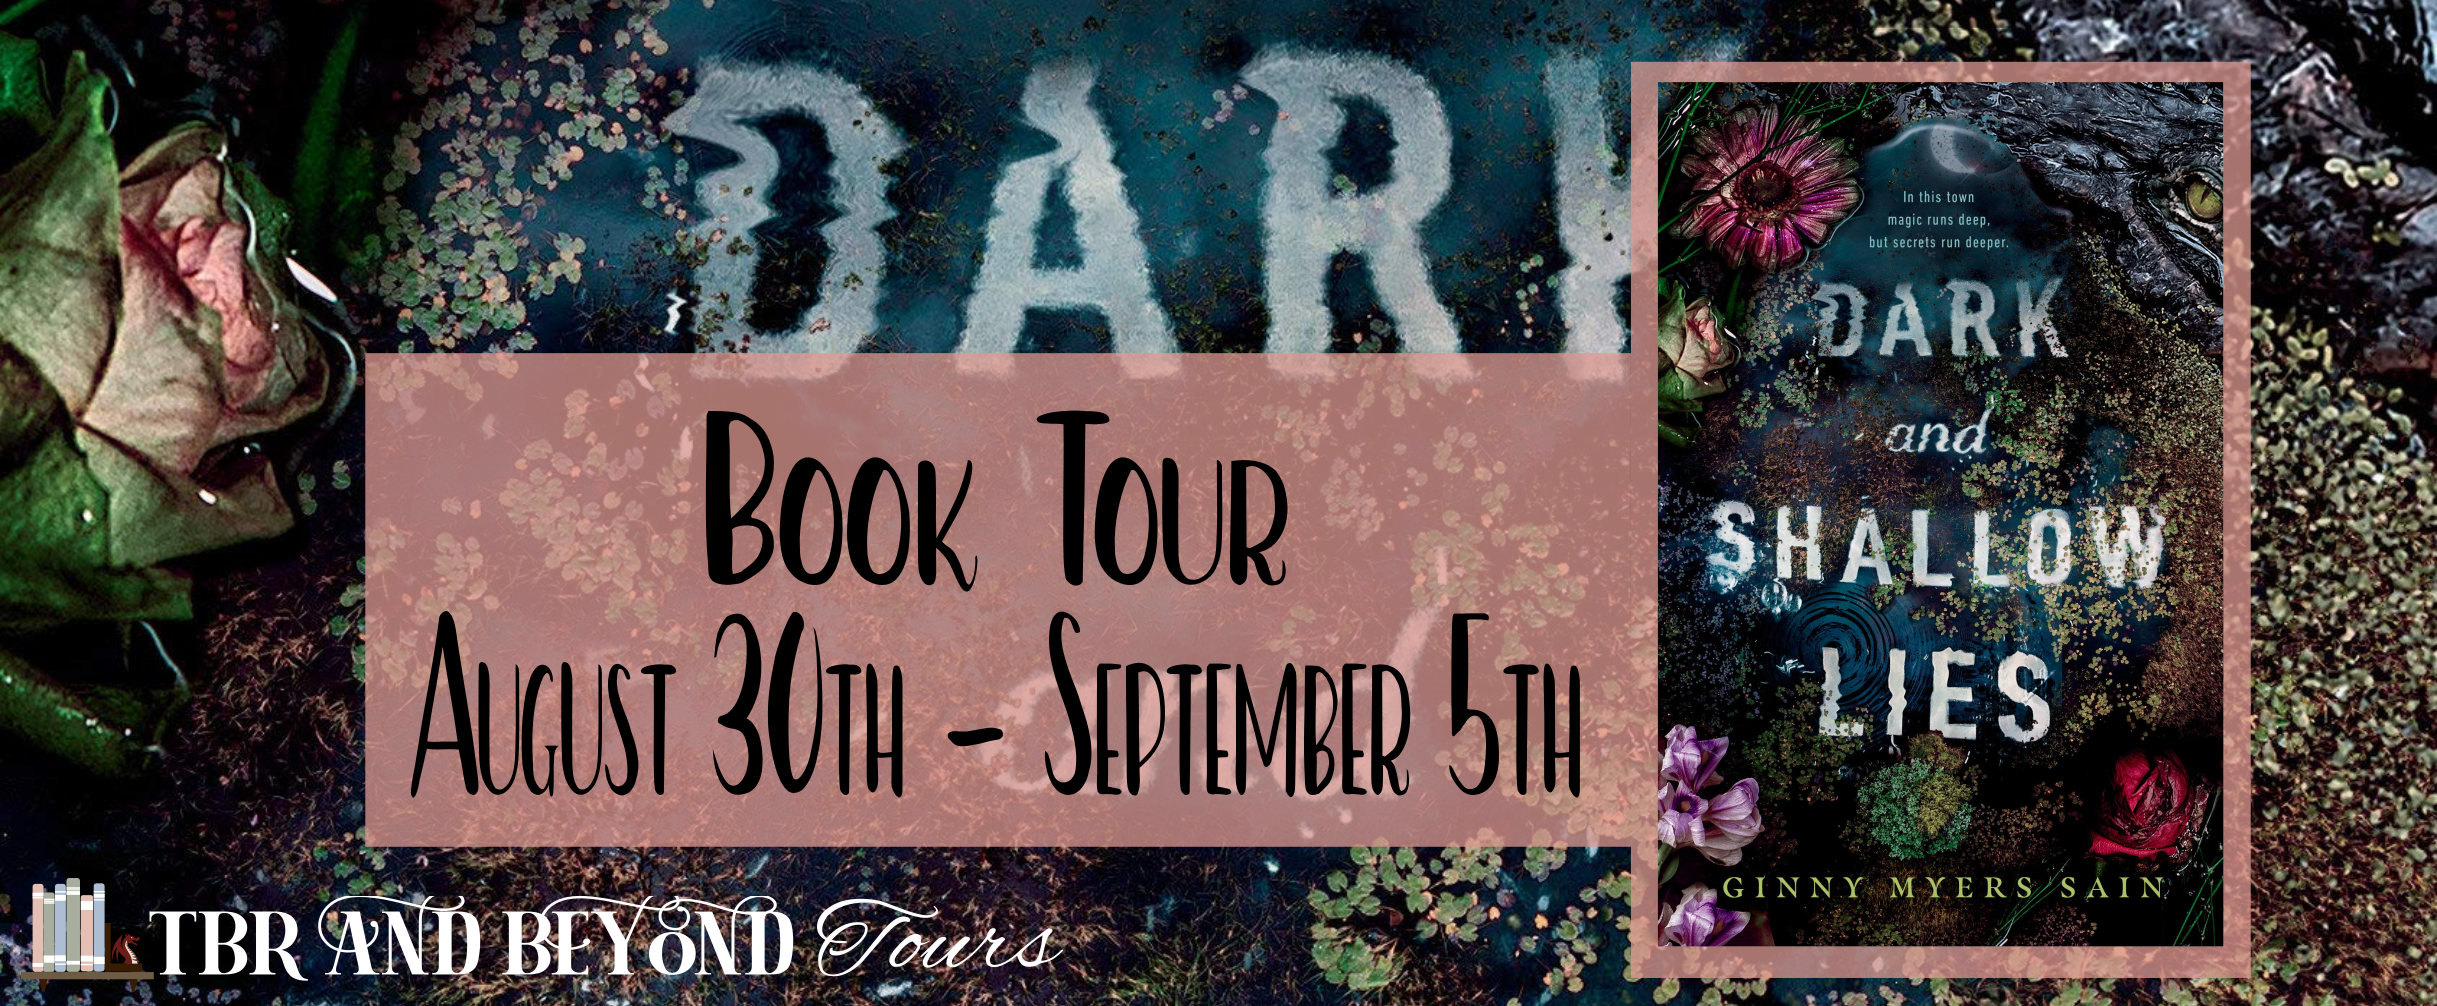 Blog Tour: Dark and Shallow Lies by Ginny Myers Sain (Interview + Giveaway!)